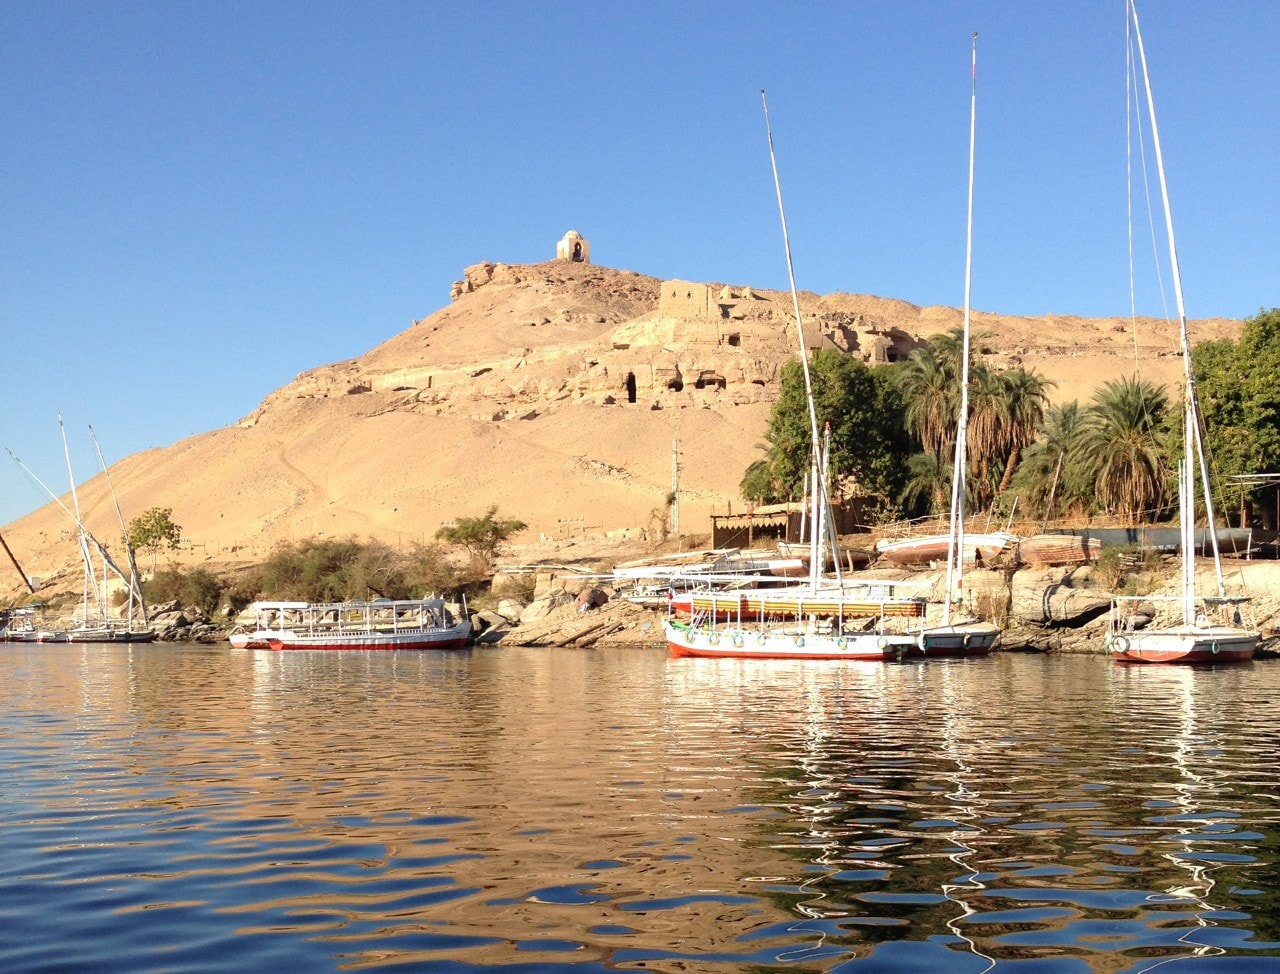 View from a boat filled harbour with a large sand covered hill in the background dotted with tombs.